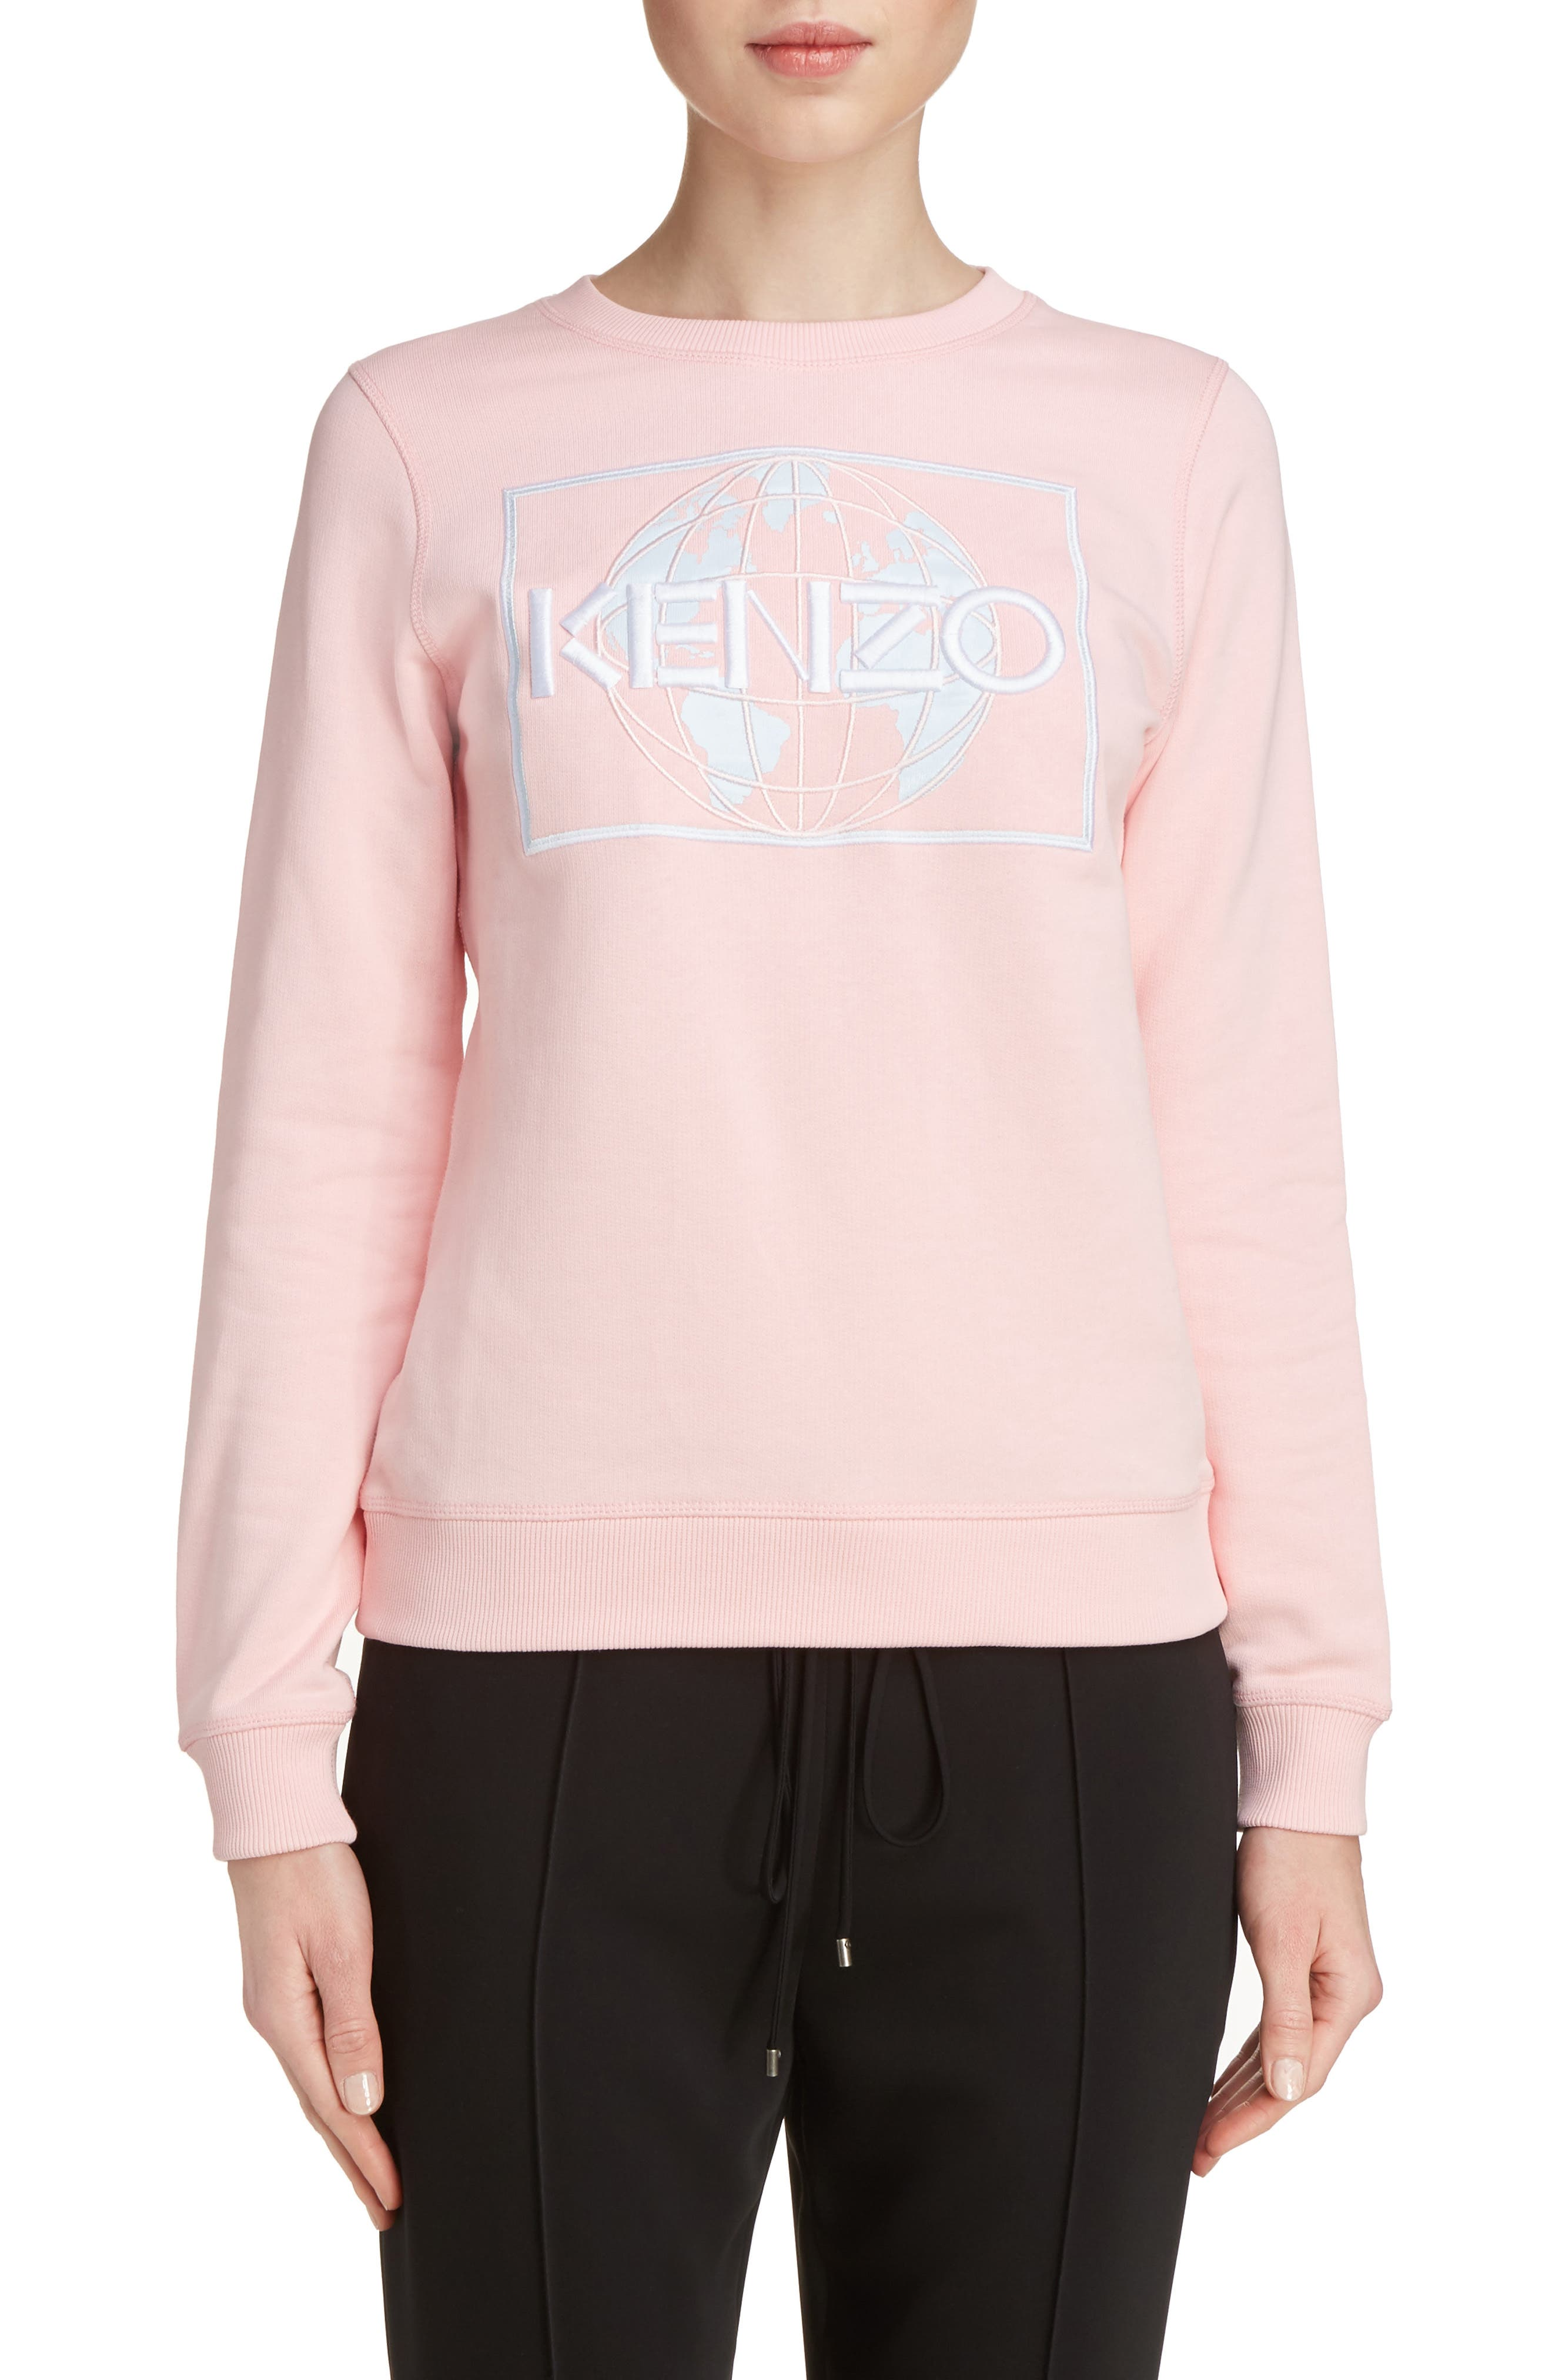 KENZO Embroidered Cotton Sweatshirt